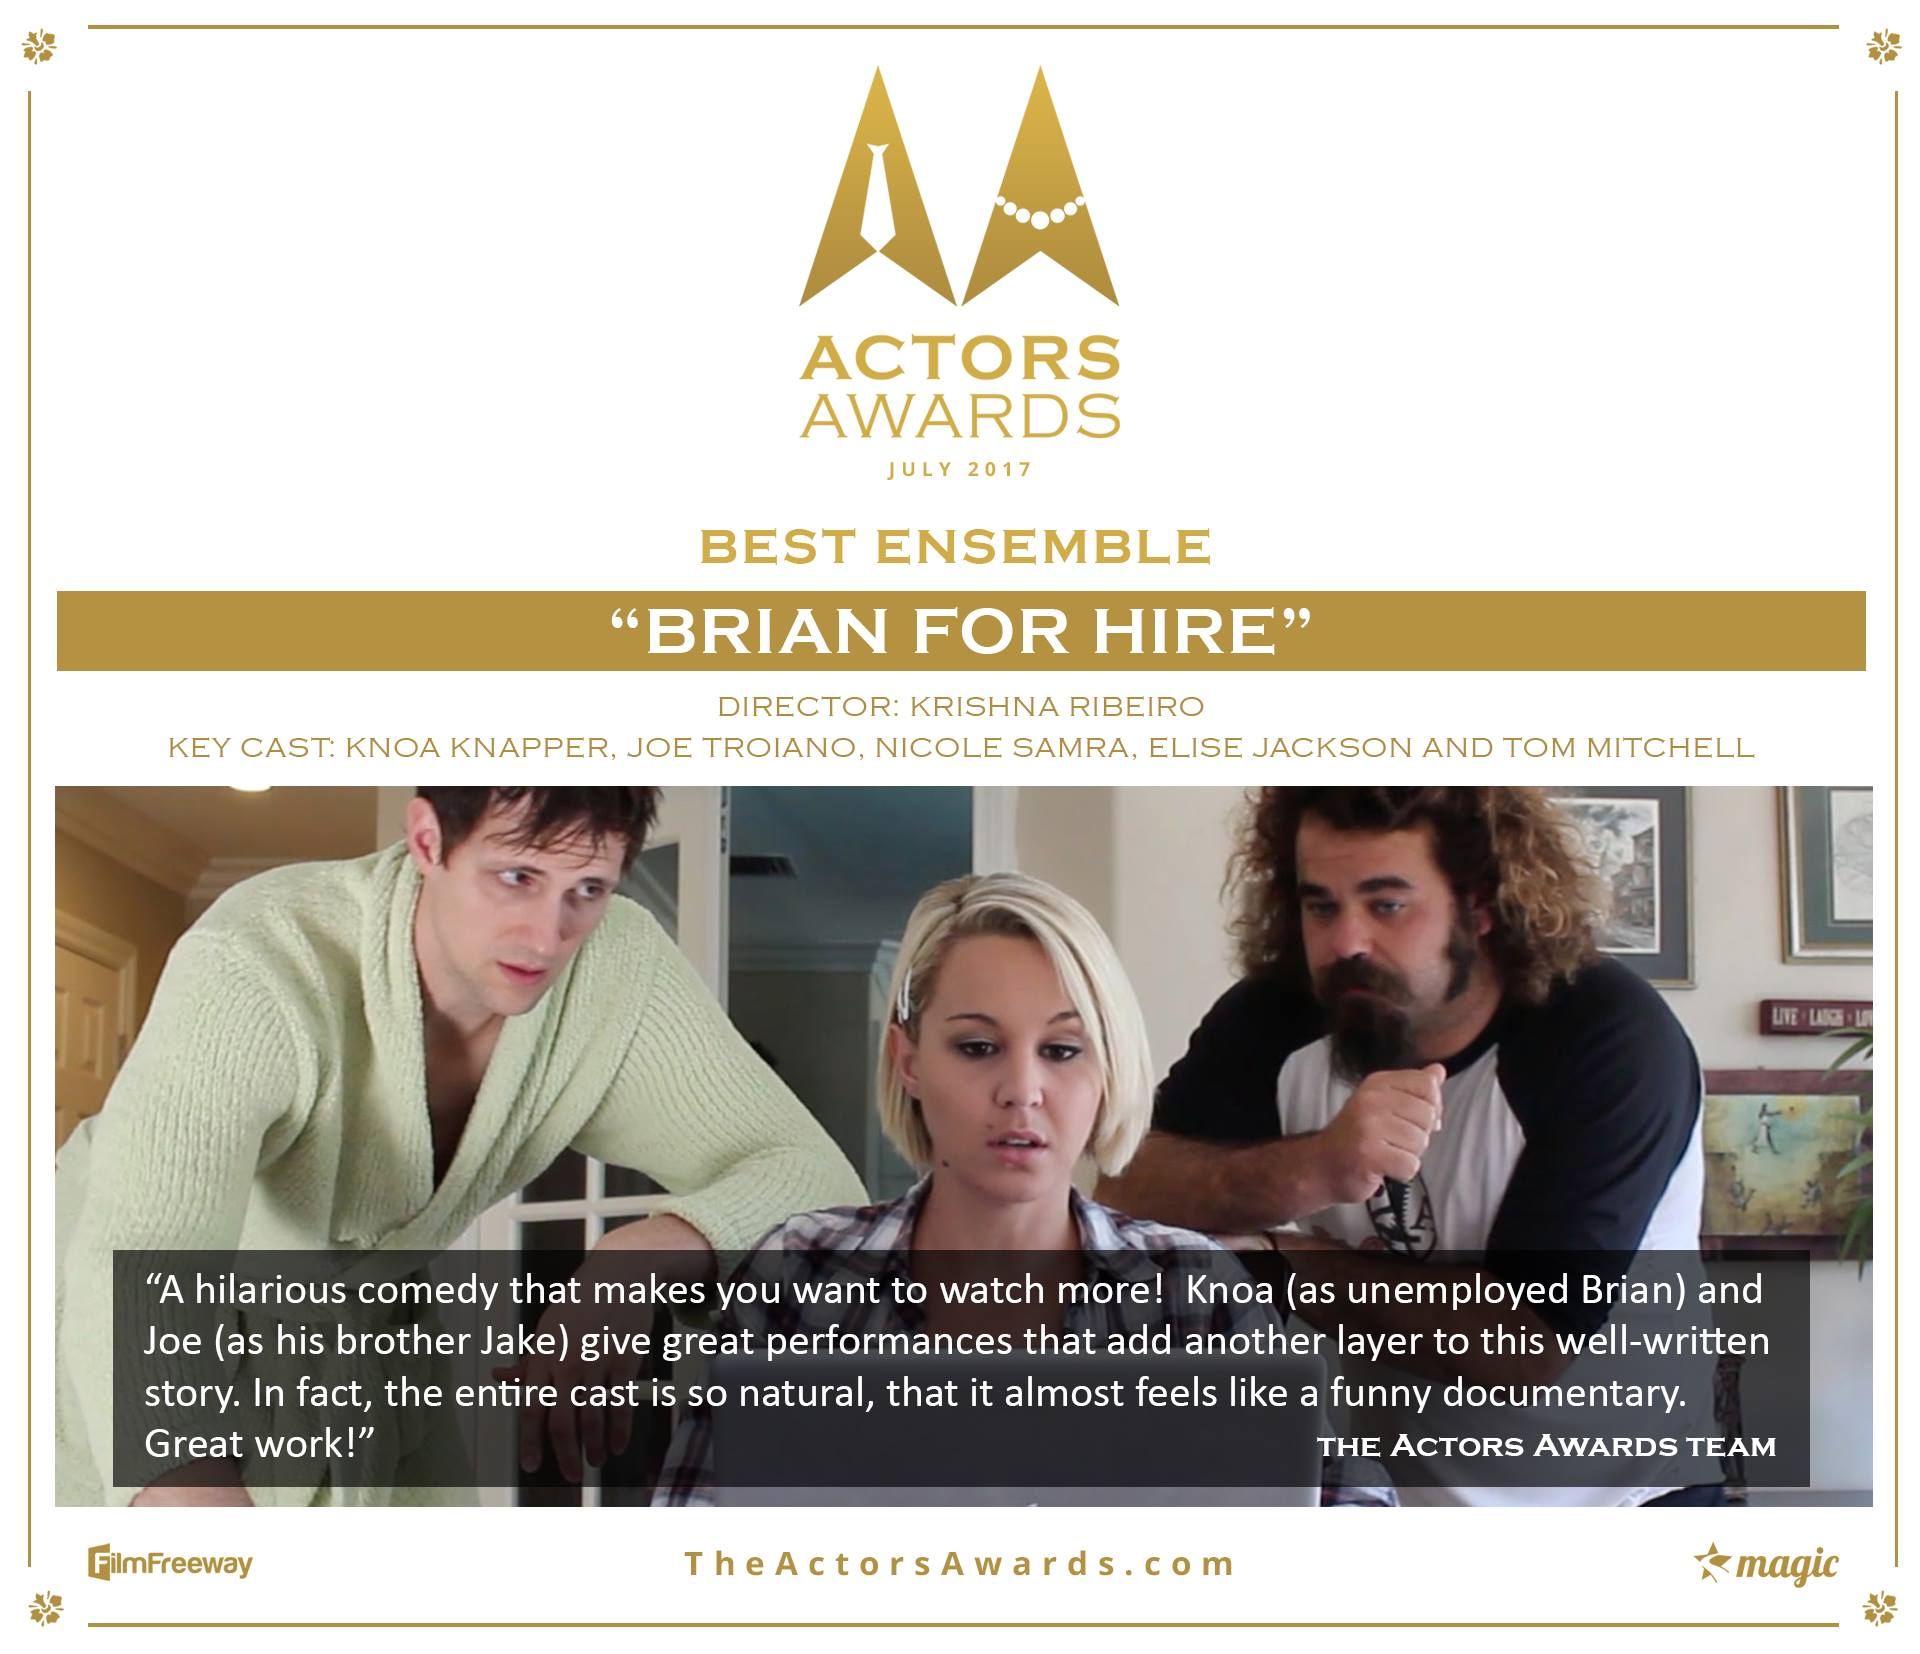 Brian for Hire Update